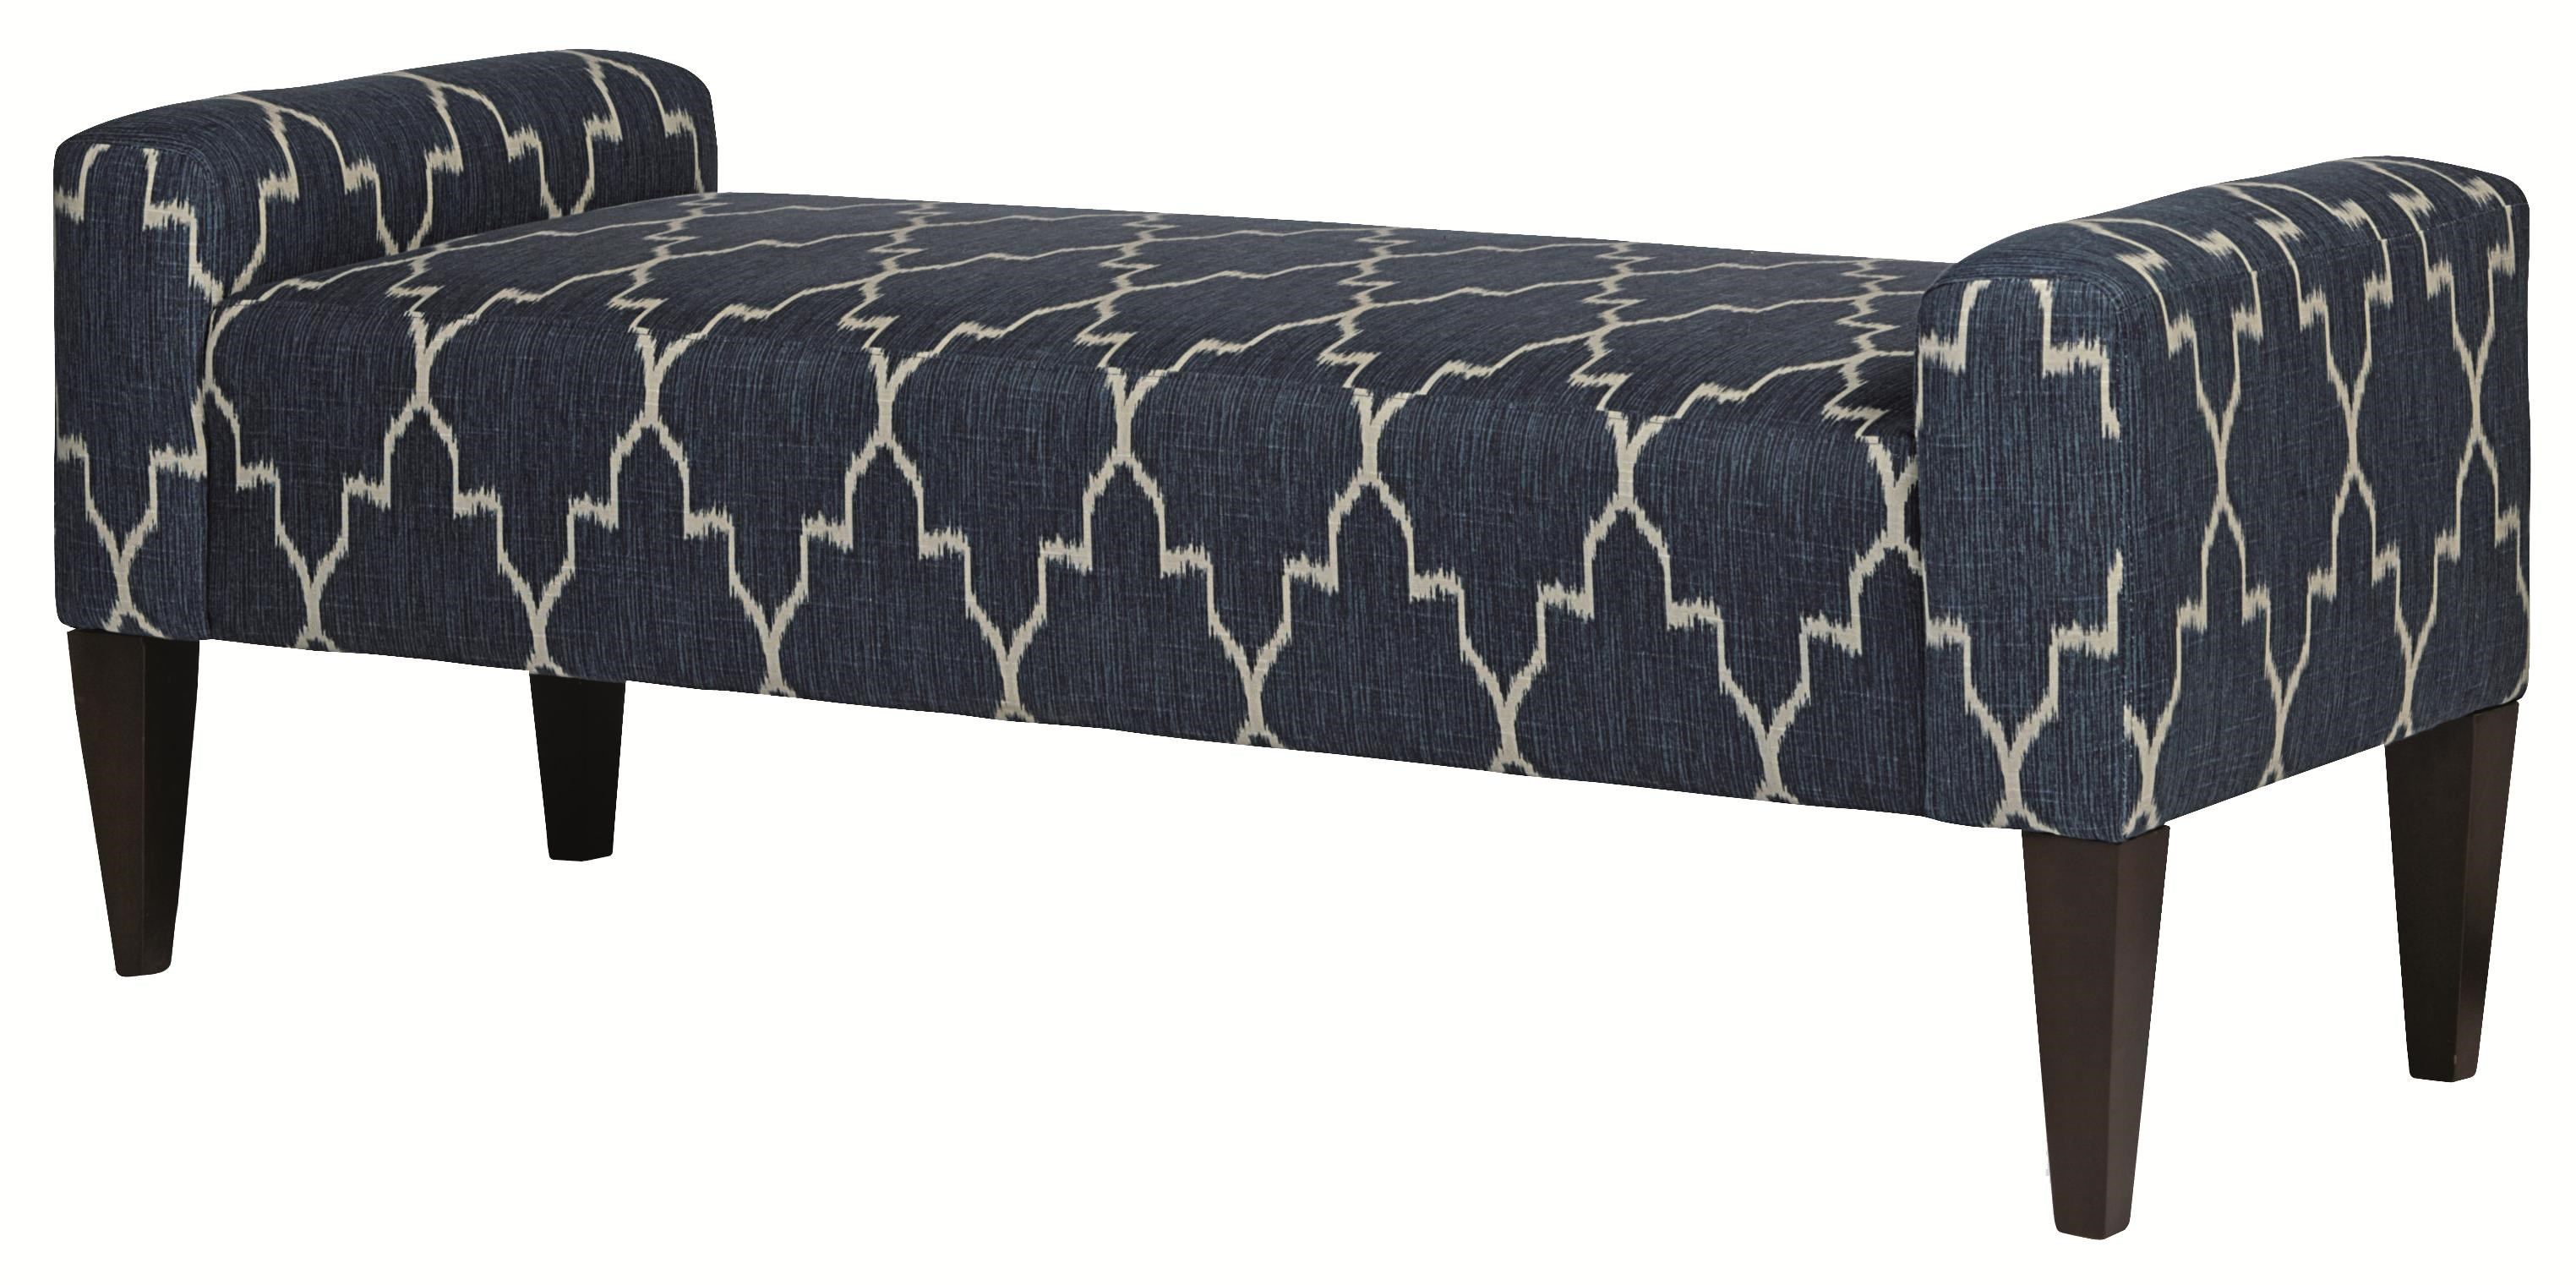 Bernhardt Upholstered Accents Sudbury High End Accent Bench in Transitional Furniture Style - Belfort Furniture - Upholstered Benches  sc 1 st  Belfort Furniture & Bernhardt Upholstered Accents Sudbury High End Accent Bench in ... islam-shia.org